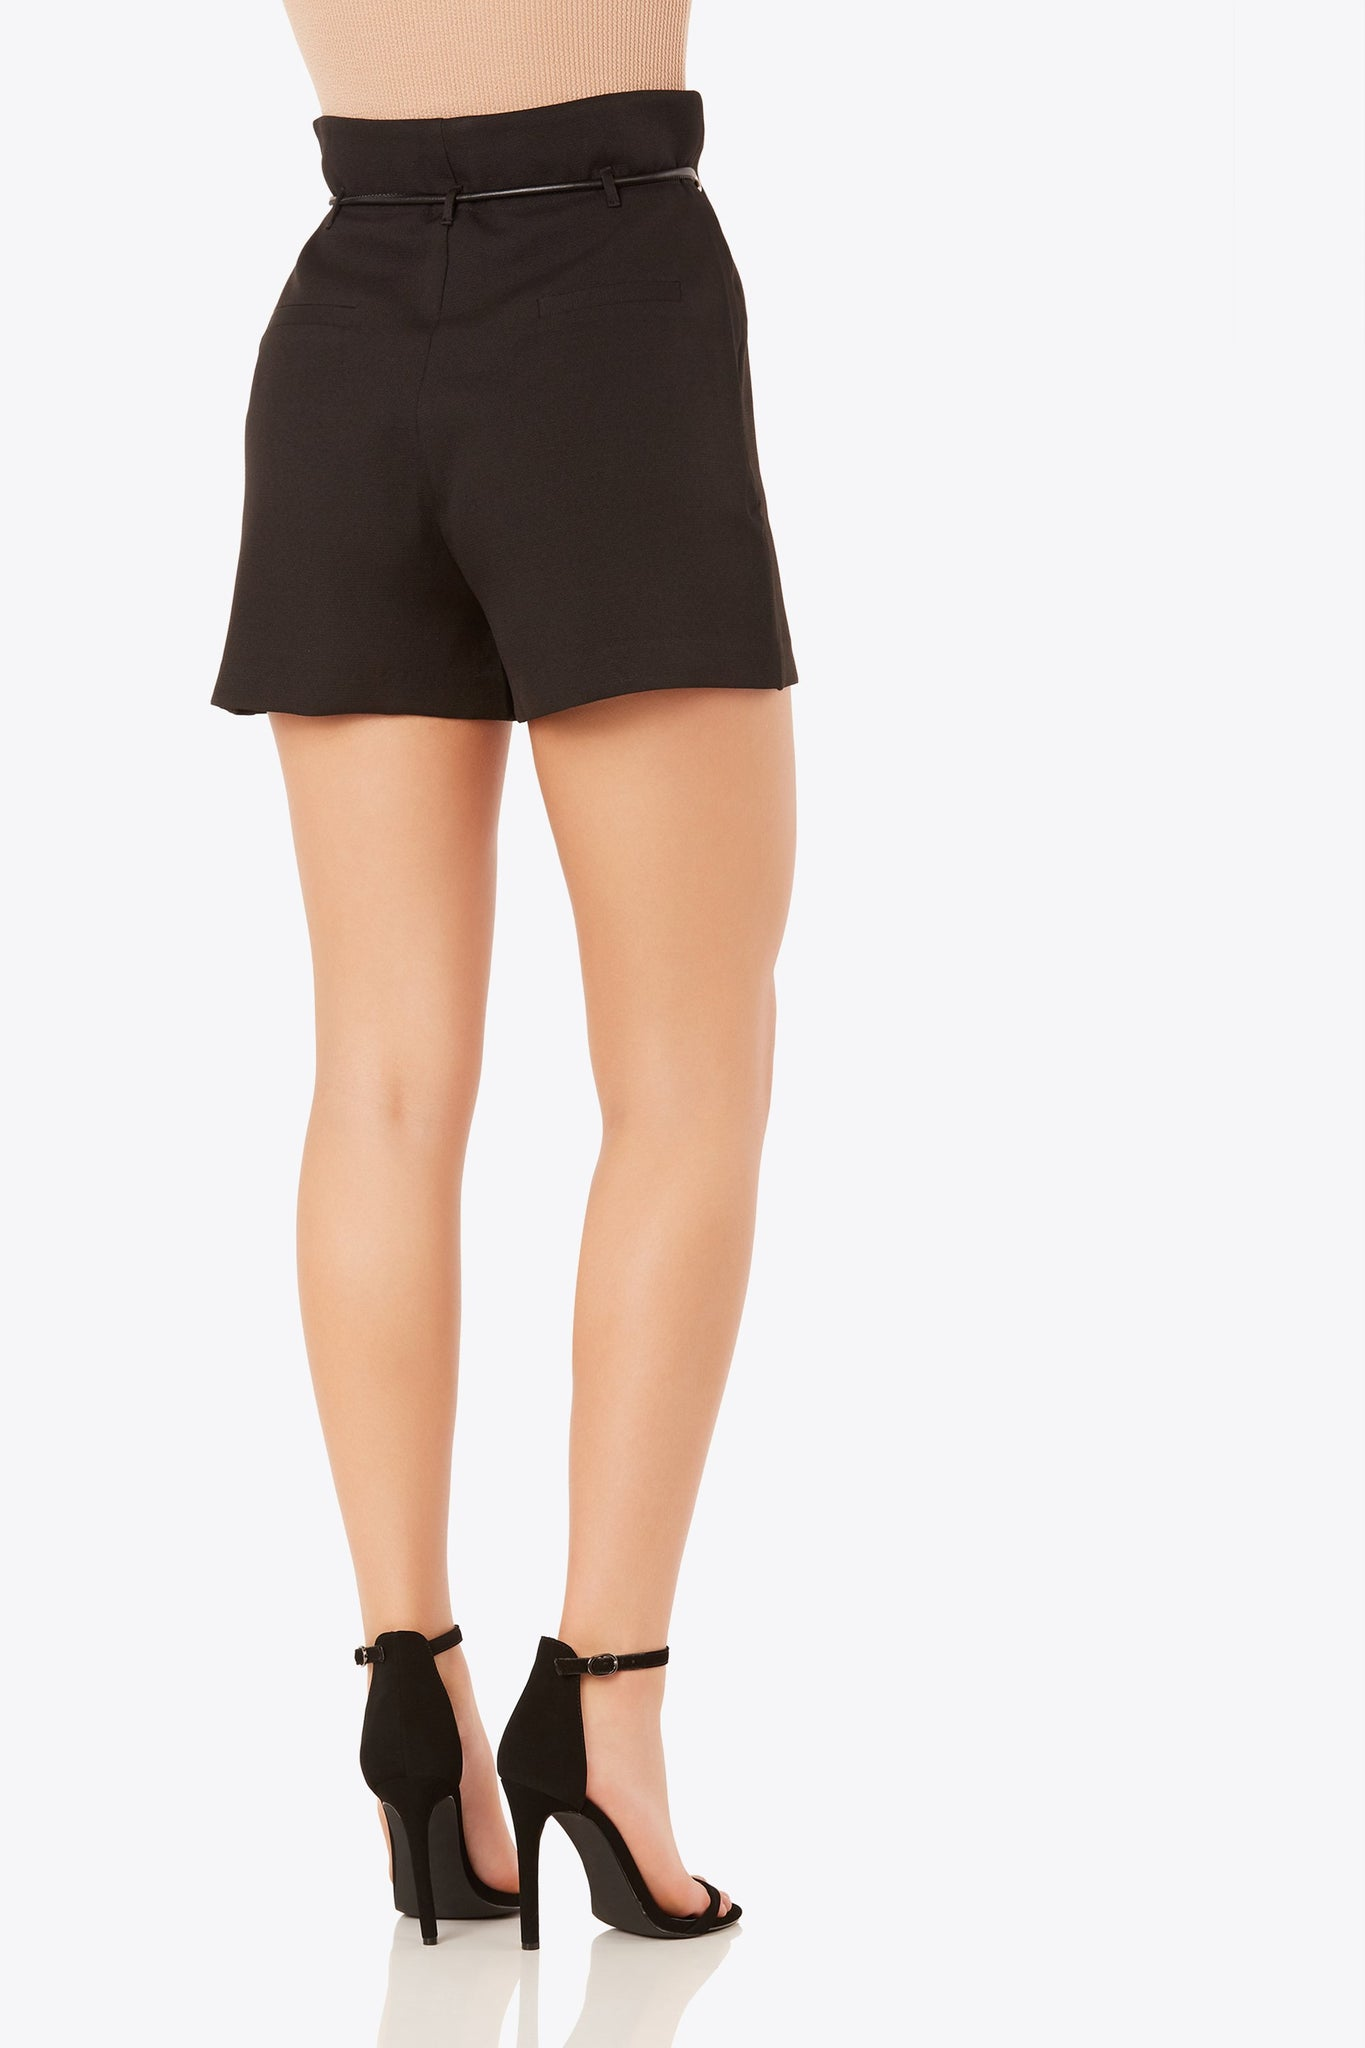 High rise shorts with front zip and button closure. Faux back pockets and eyelet detailing in front. Contrast cord tie at waist with straight hem finish.